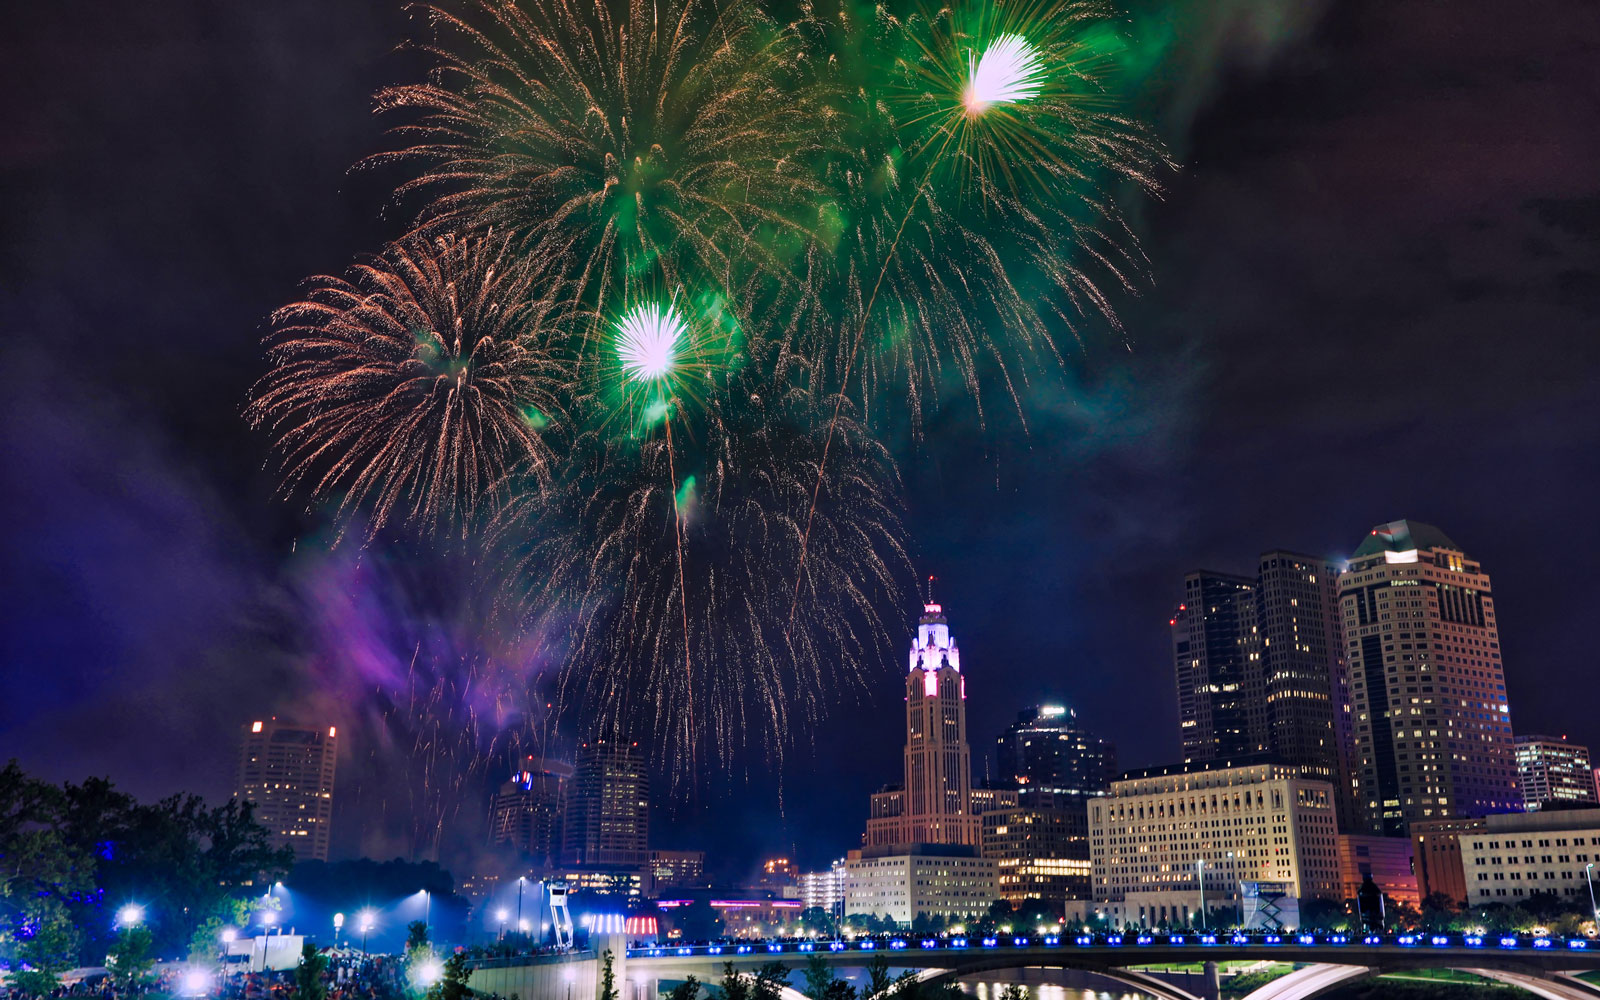 Columbus Ohio skyline with fireworks